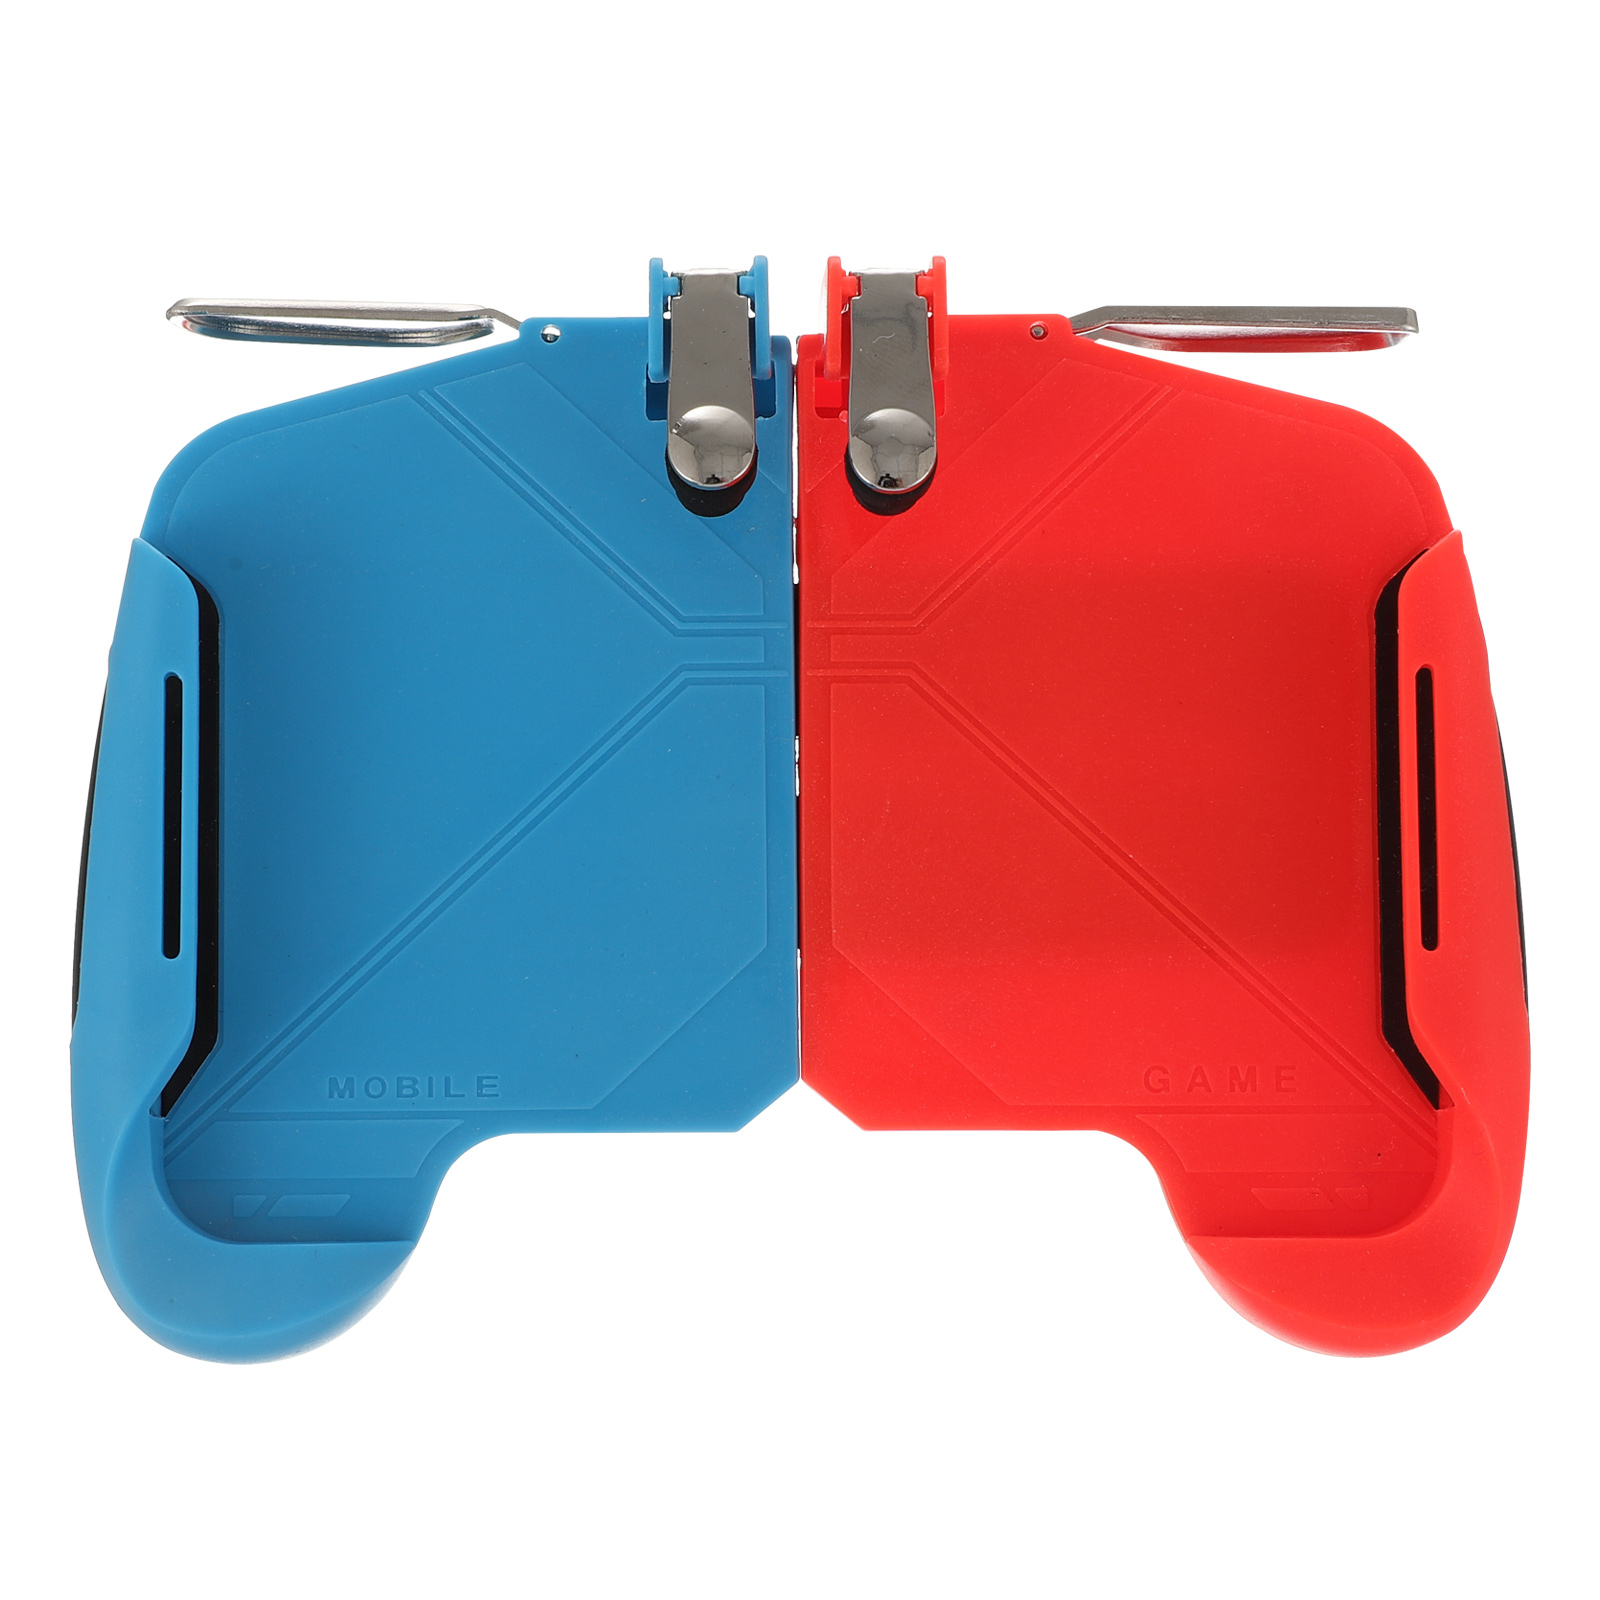 1Pc Phone Game Controller Mobile Controller Trigger Phone Game Accessory